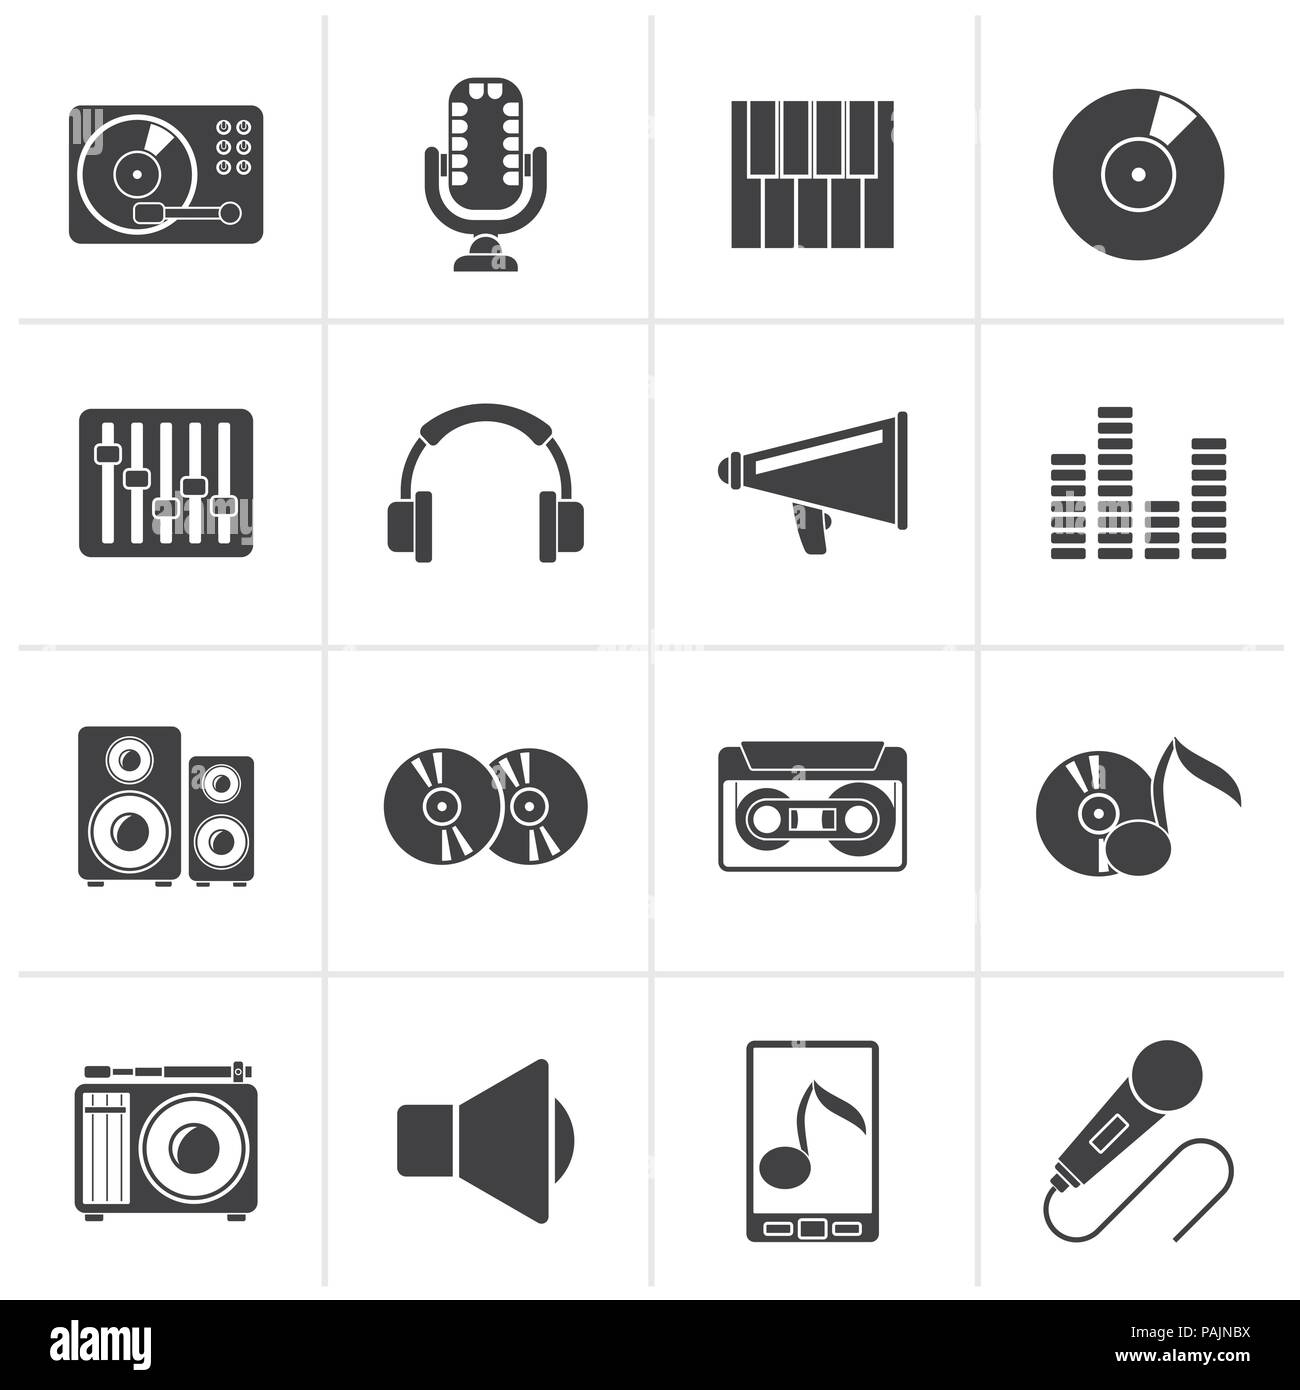 Black Music and audio equipment icons - vector icon set - Stock Image